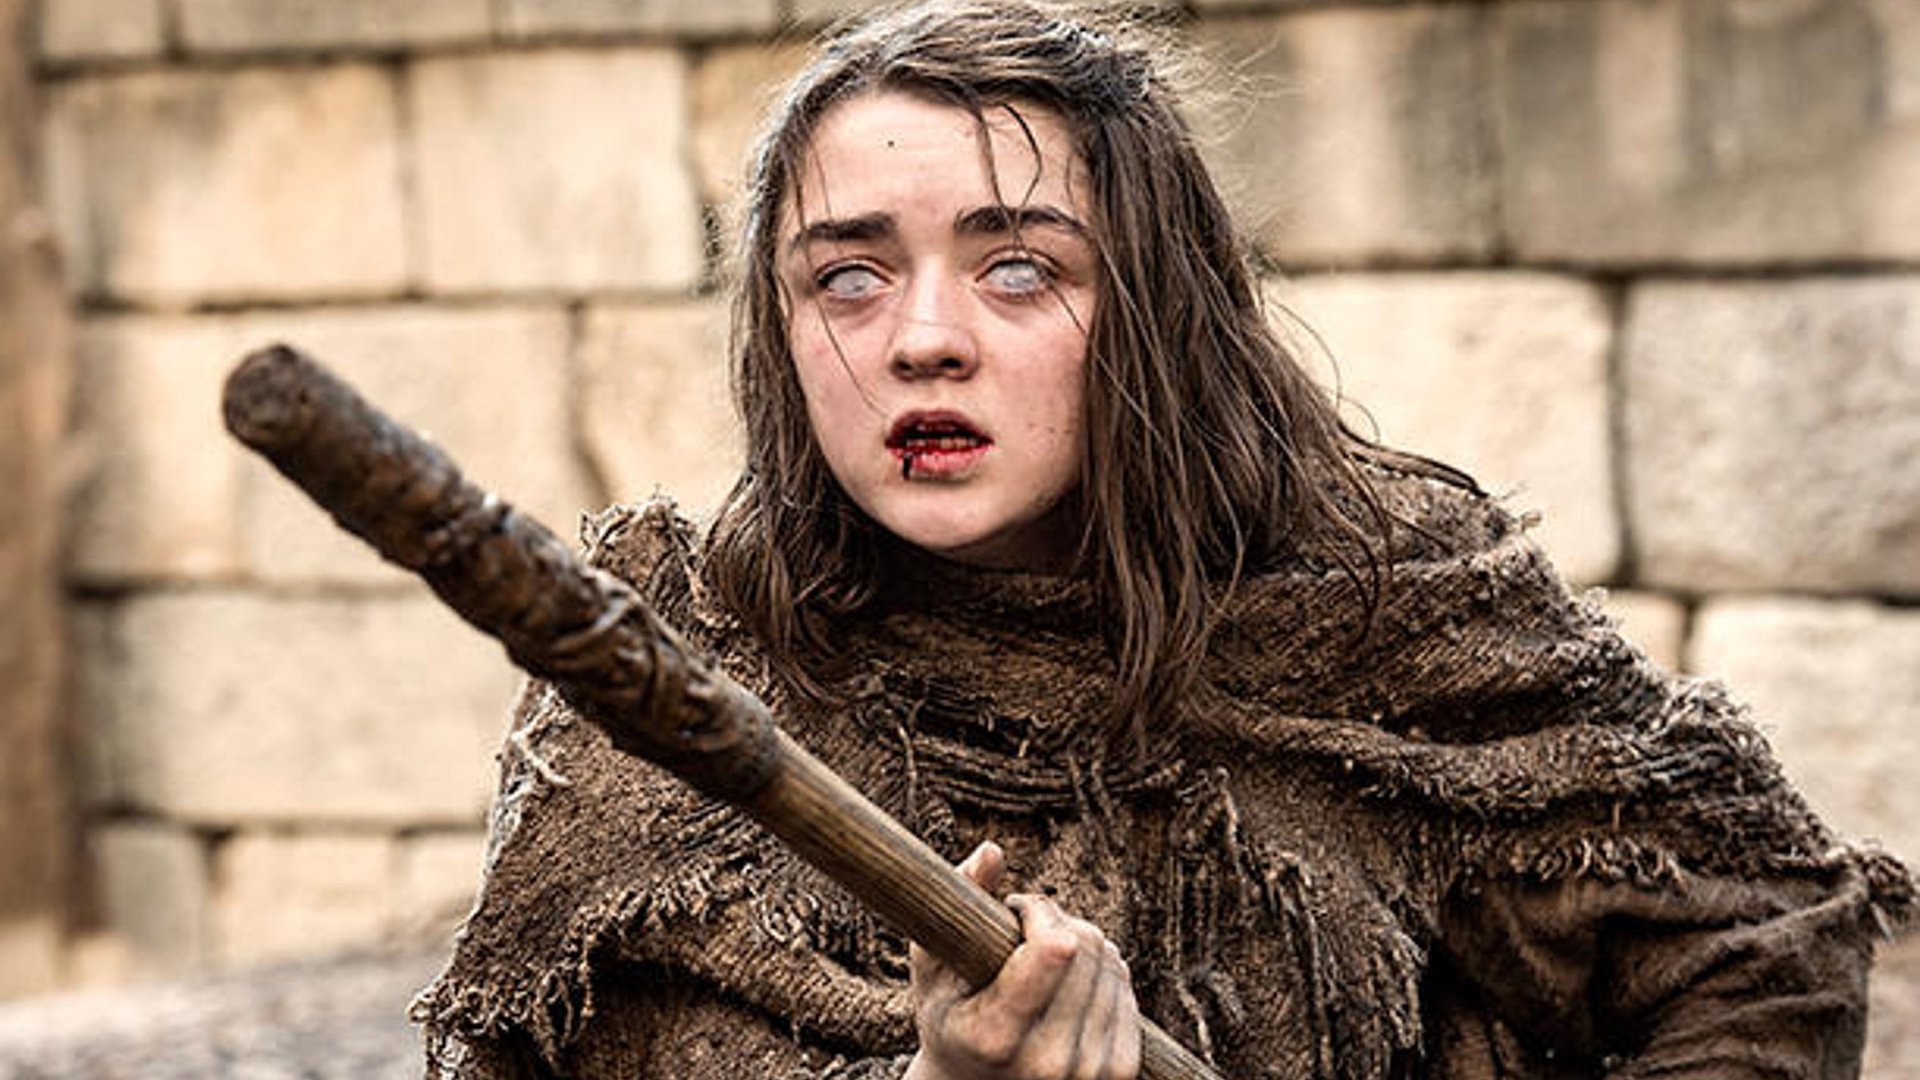 A Brief New Clip Has Been Released From Game Of Thrones Season 6 Called Aryas Blind Training And It Features Arya Stark Maisie Williams Who Is Put In